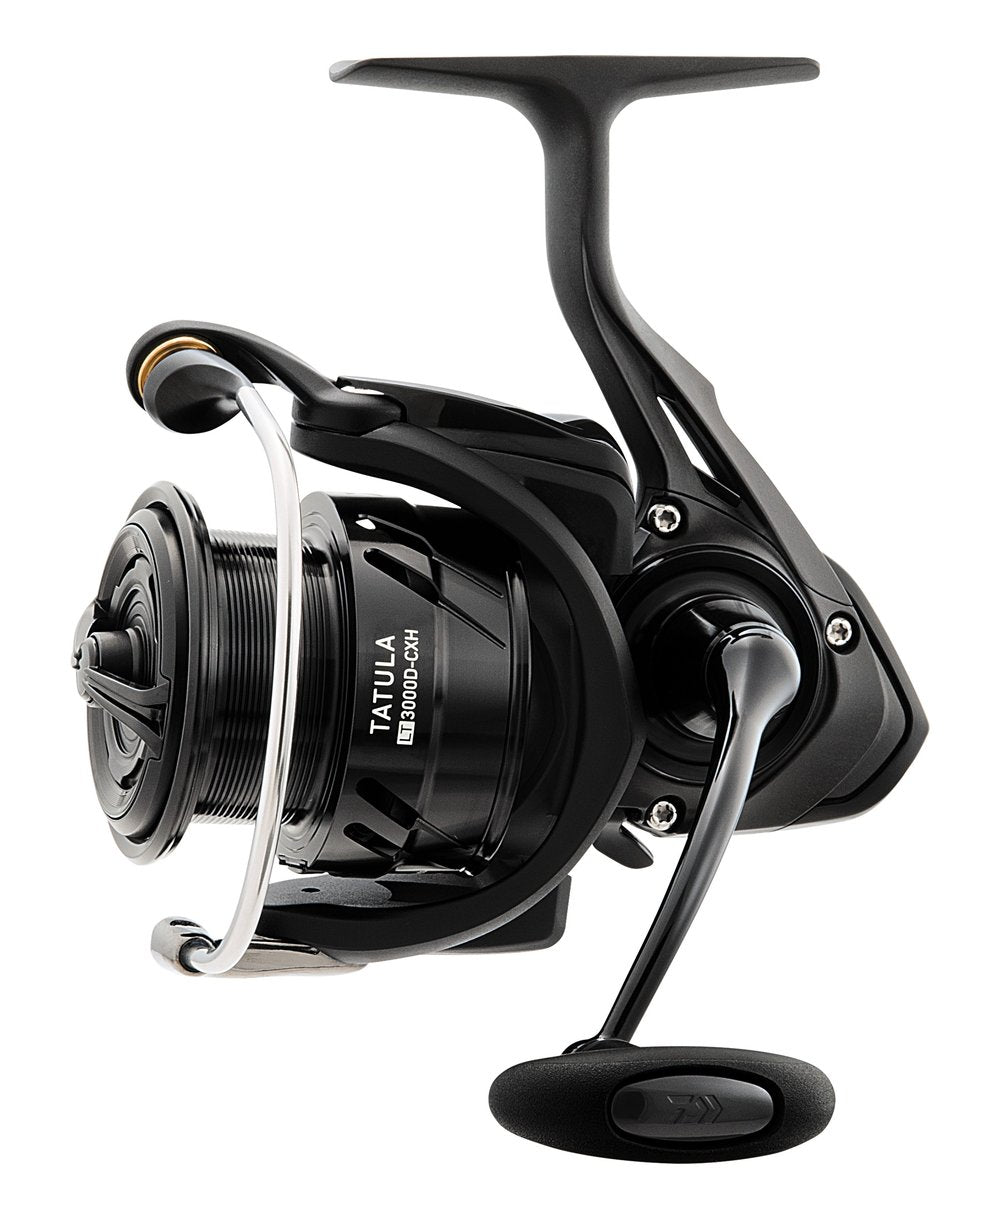 DAIWA TATULA LT -- Shipping Included